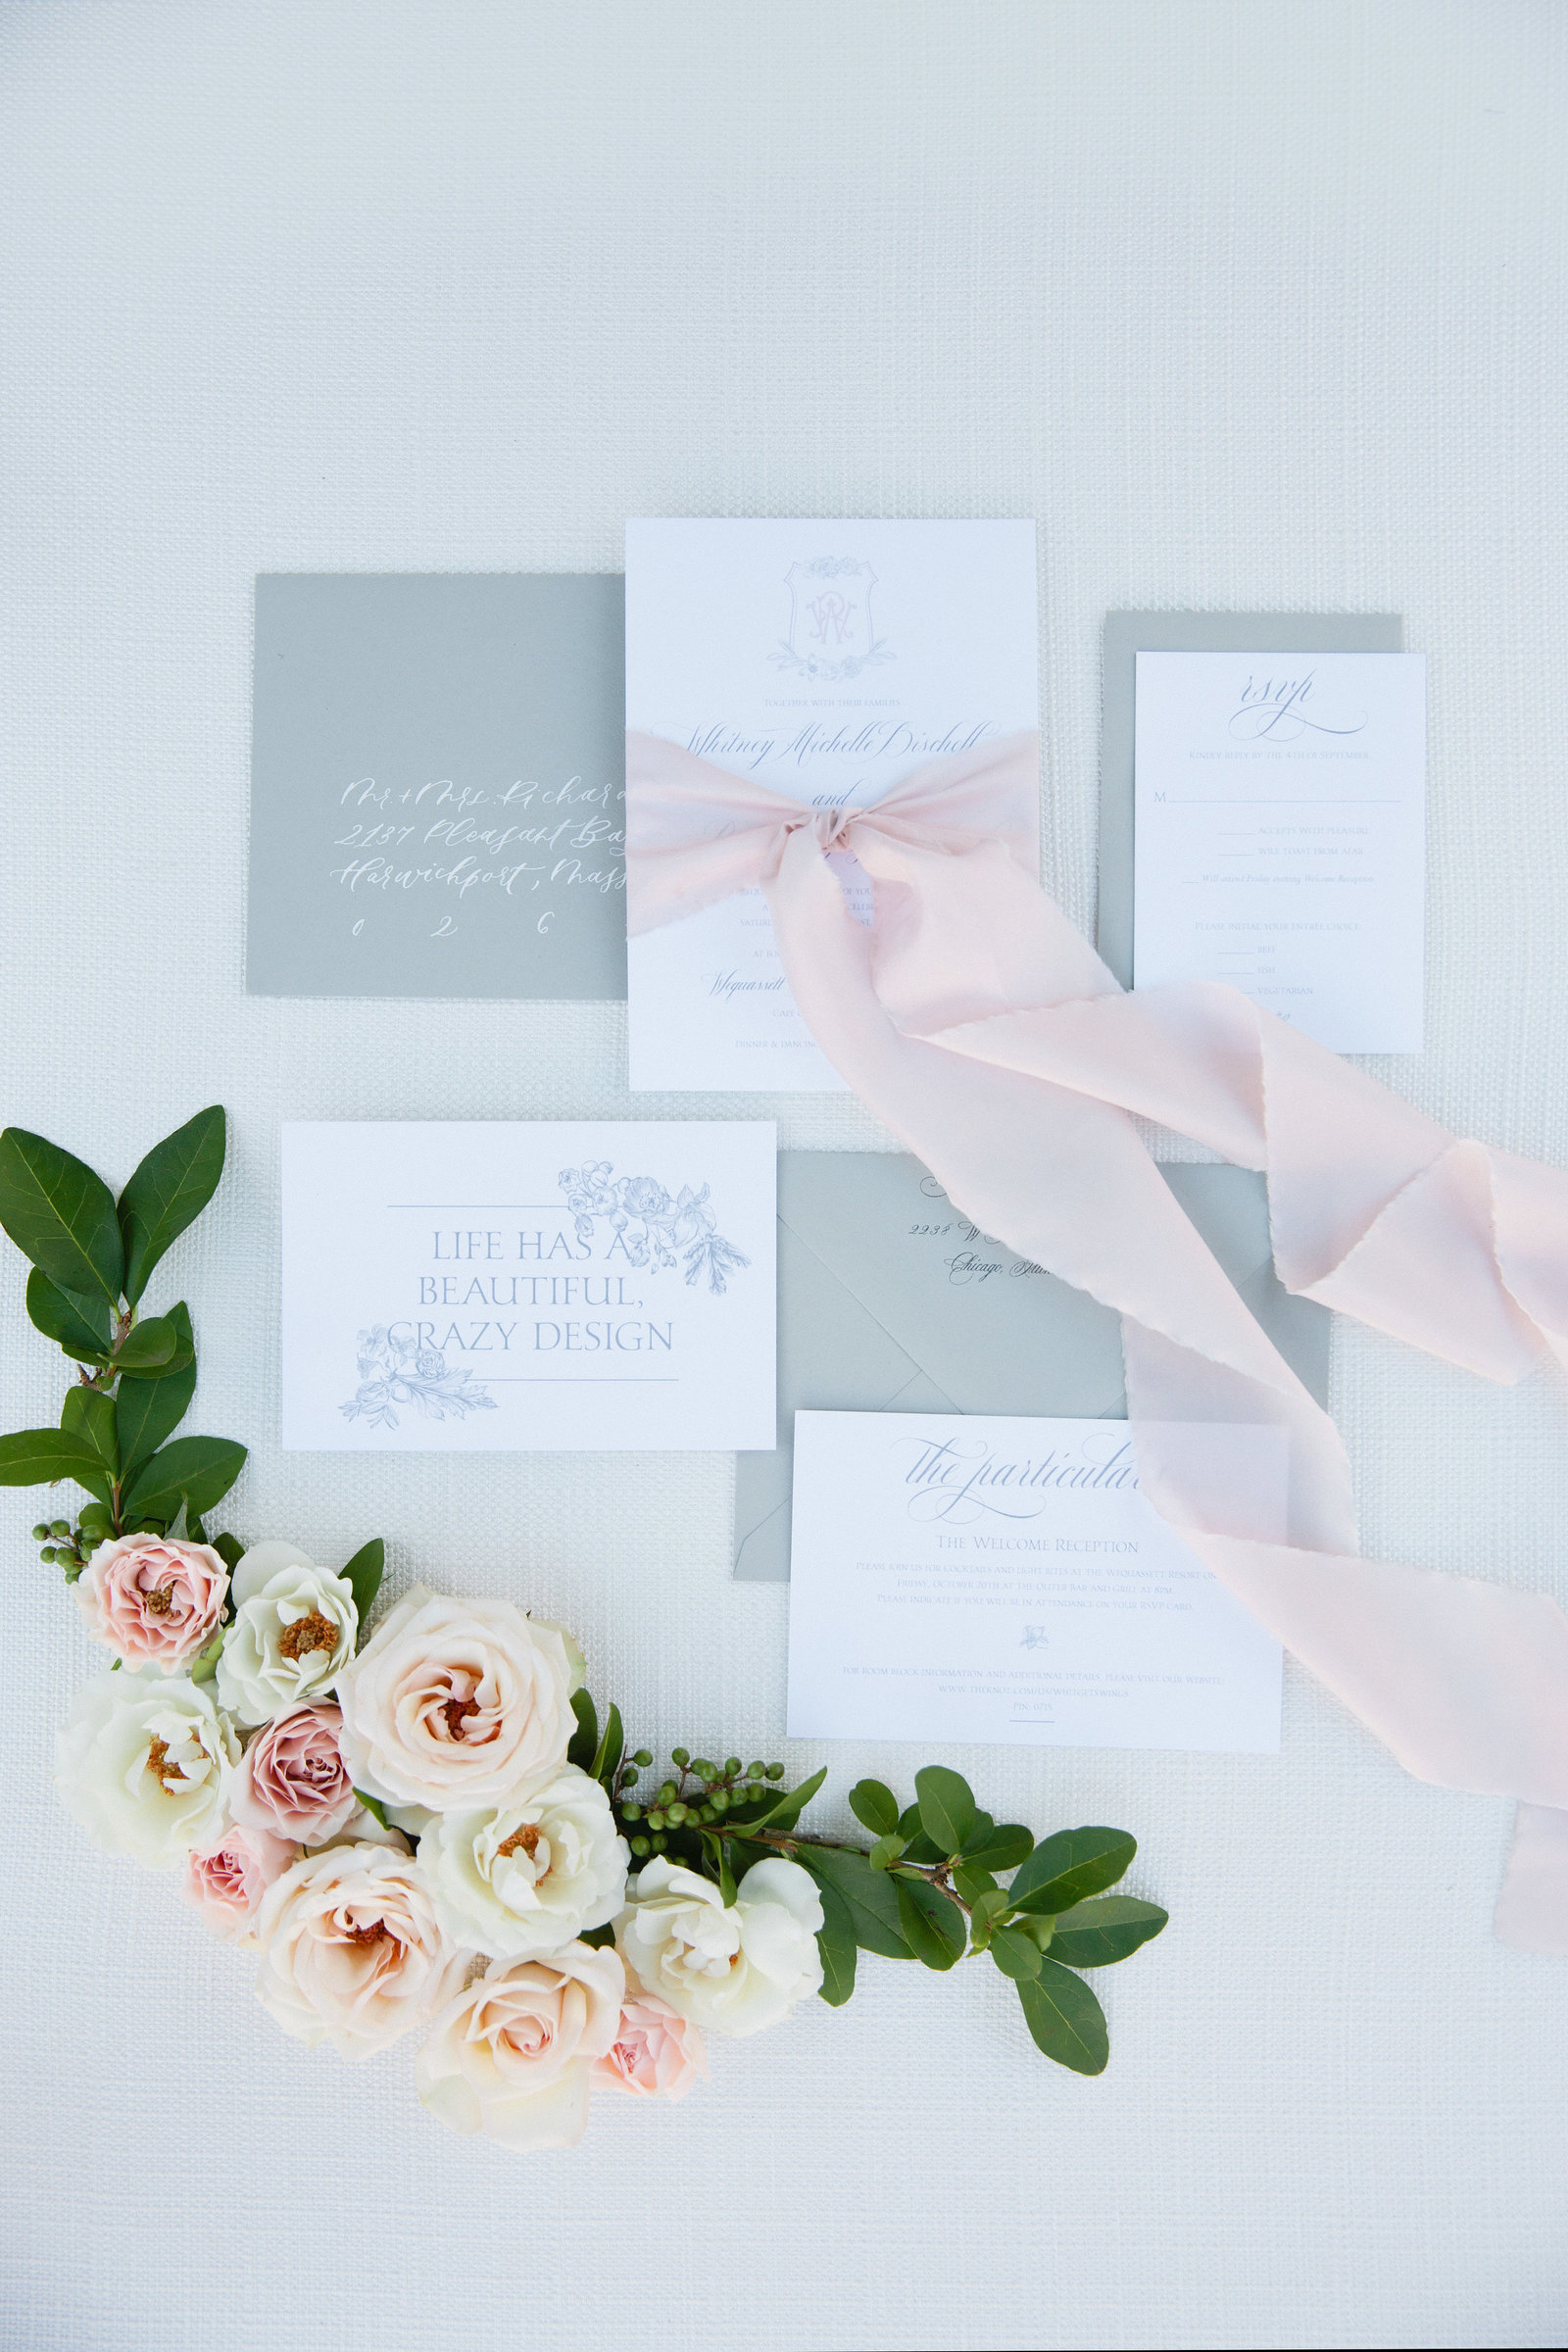 Gray, white and blush wedding invitation for whitney bischoff angel